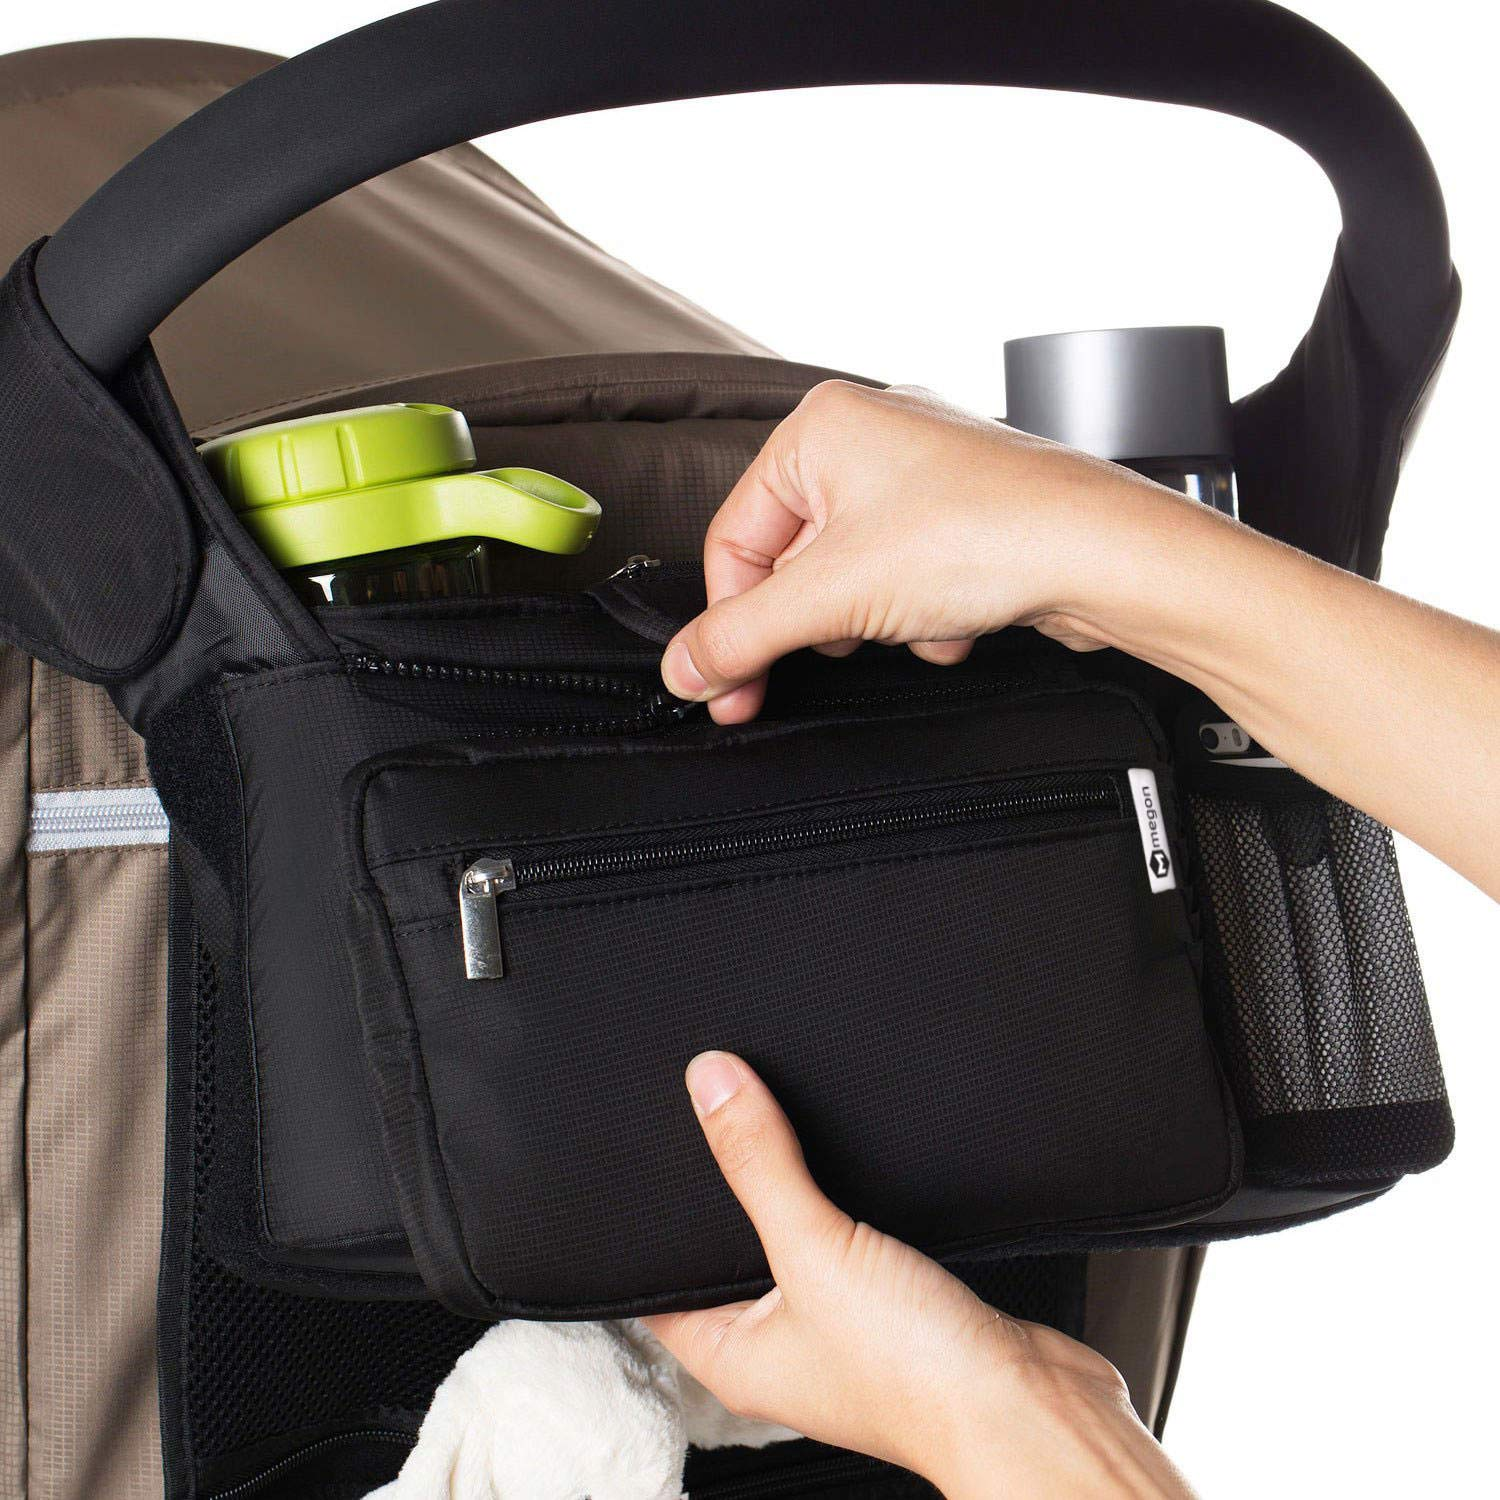 Cell Phone Stroller Bag Portable Pram Organiser Pushchair Organizer Insulated Cup Holders Multi Function Organizer Bag for Joie Brisk LX Travel Parent Console Stores Bottles Diapers Keys Wallet